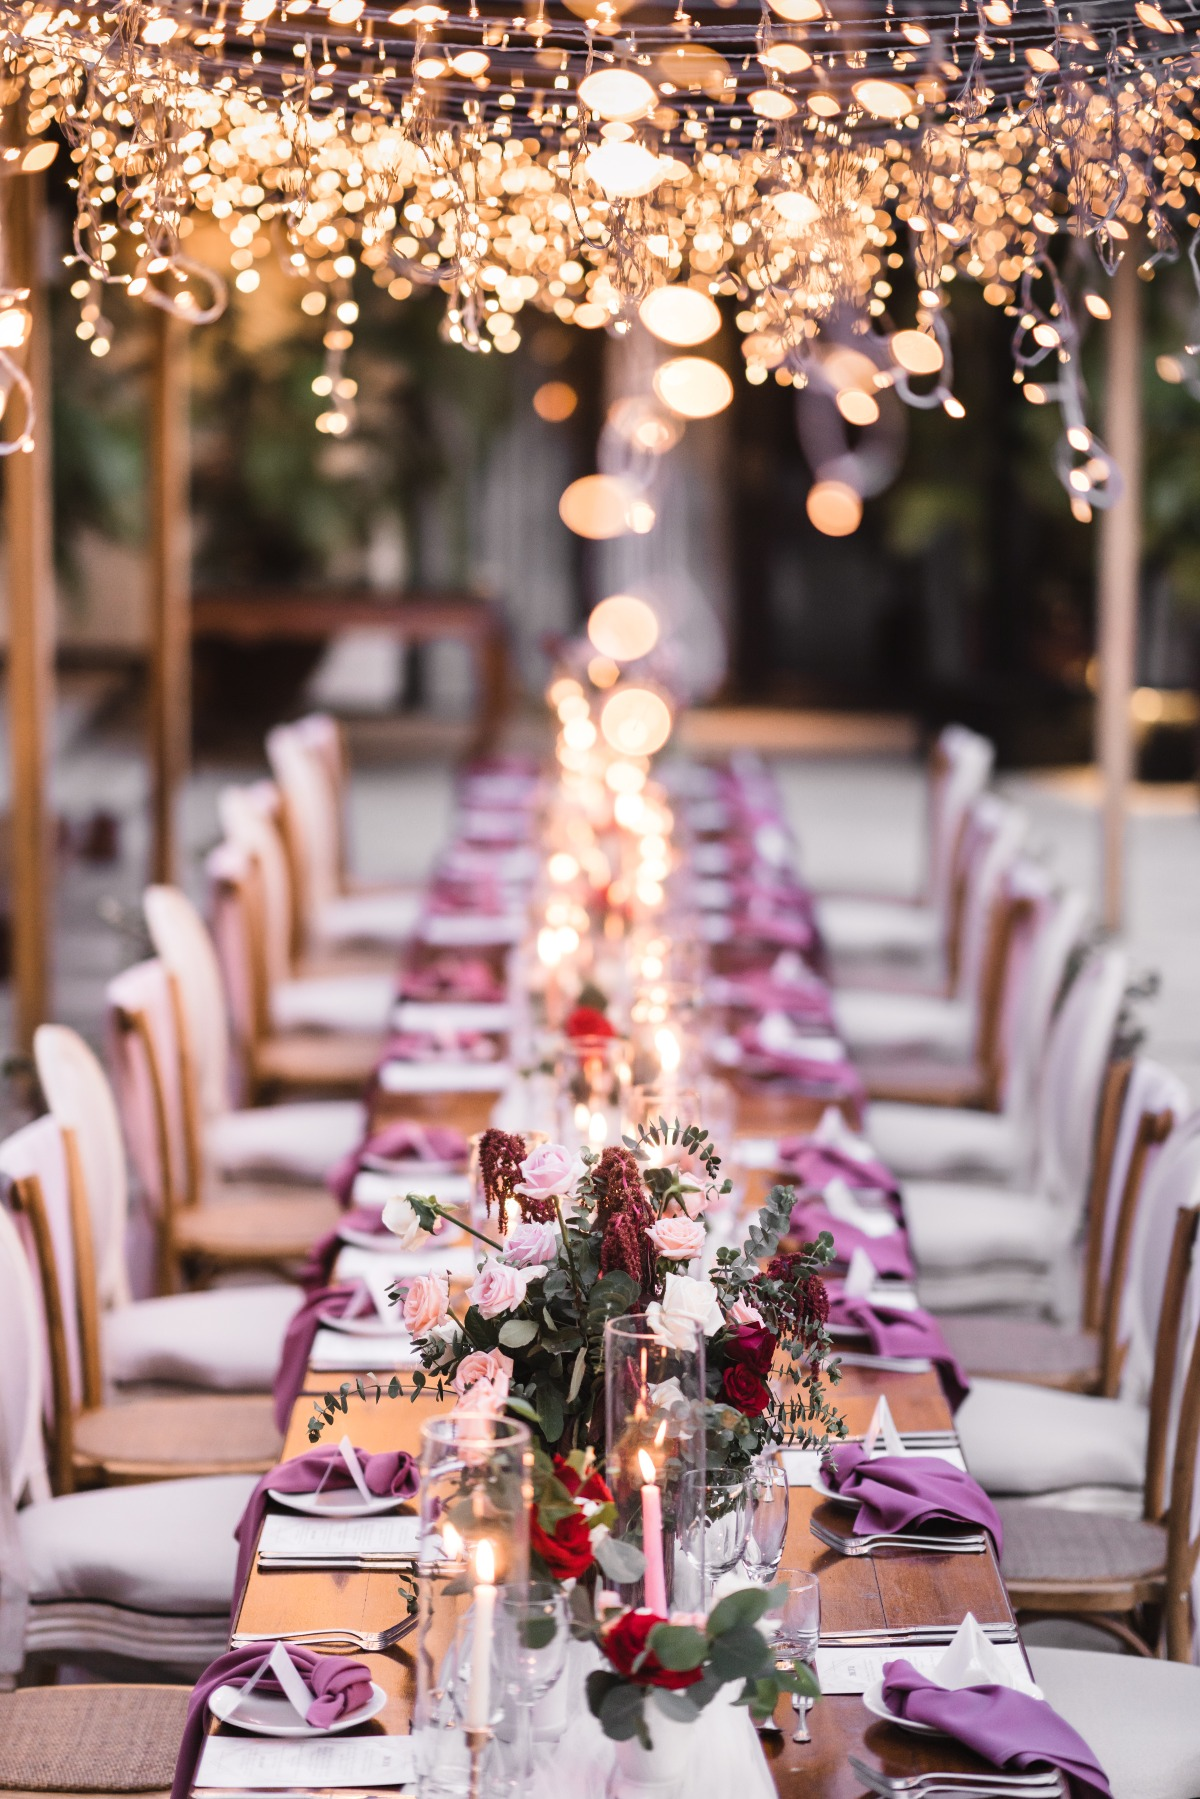 Swell A Dreamy Purple And Pink Wedding In Thailand Download Free Architecture Designs Scobabritishbridgeorg